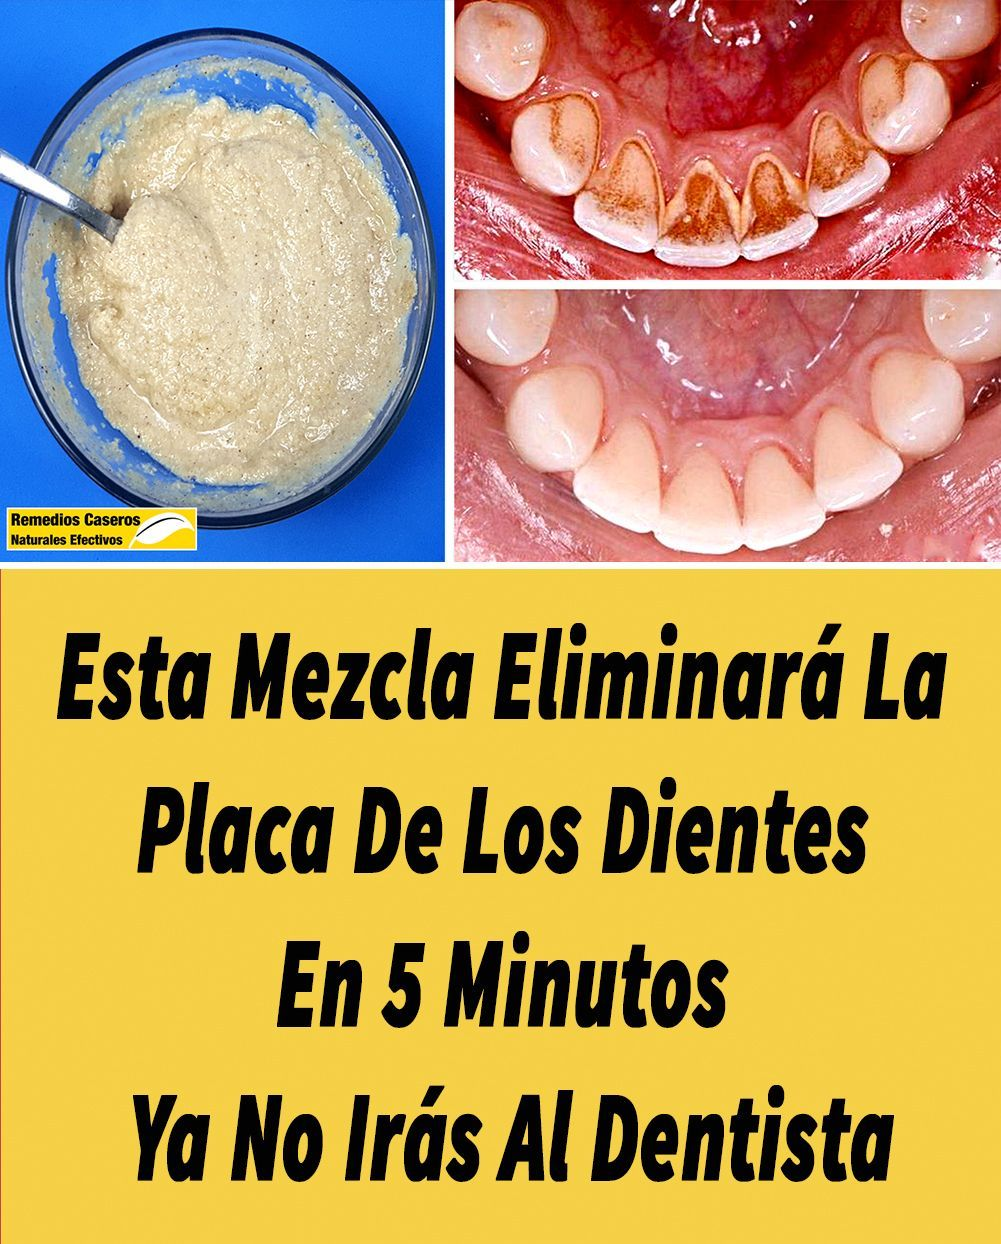 Cómo Eliminar La Placa Dental Comoeliminarlaplacadental Es Uno De Los Problemas Dentales Más Frecuentes Hoy En Día Health And Beauty Natural Remedies Remedies